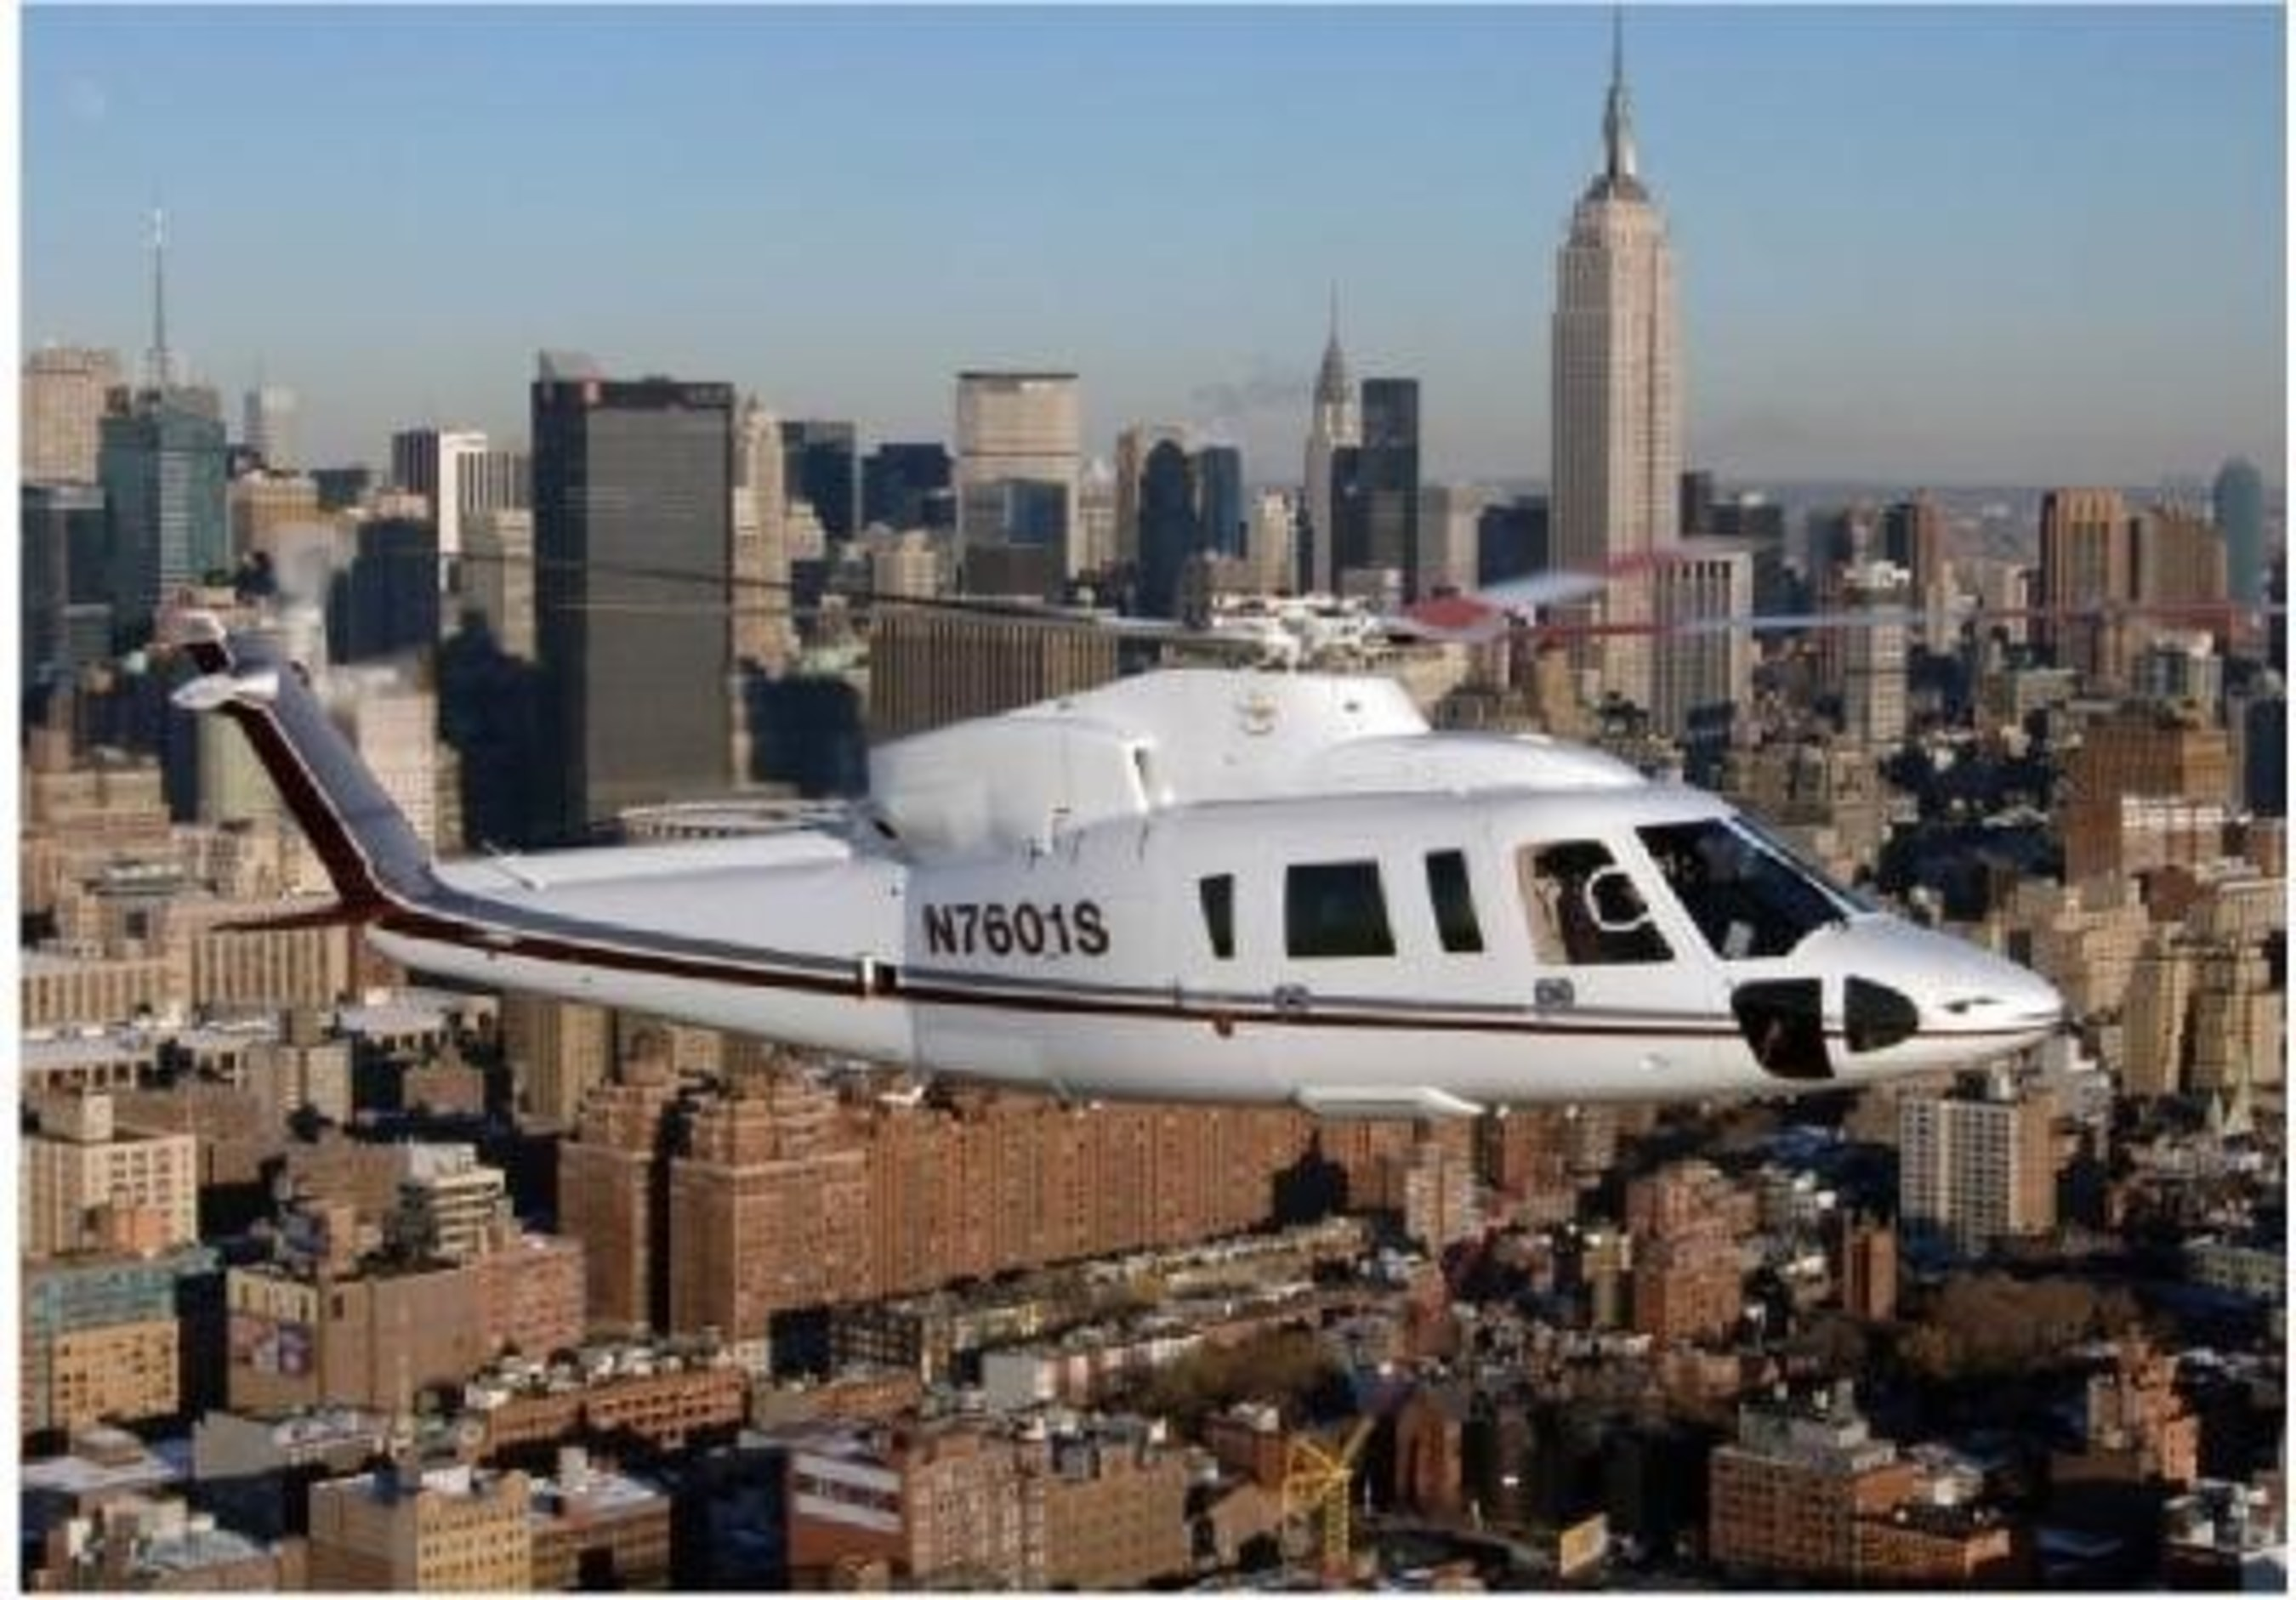 Sikorsky is producing airframe kits to upgrade the S-76C+(TM) helicopter to S-76C++(TM) capability.